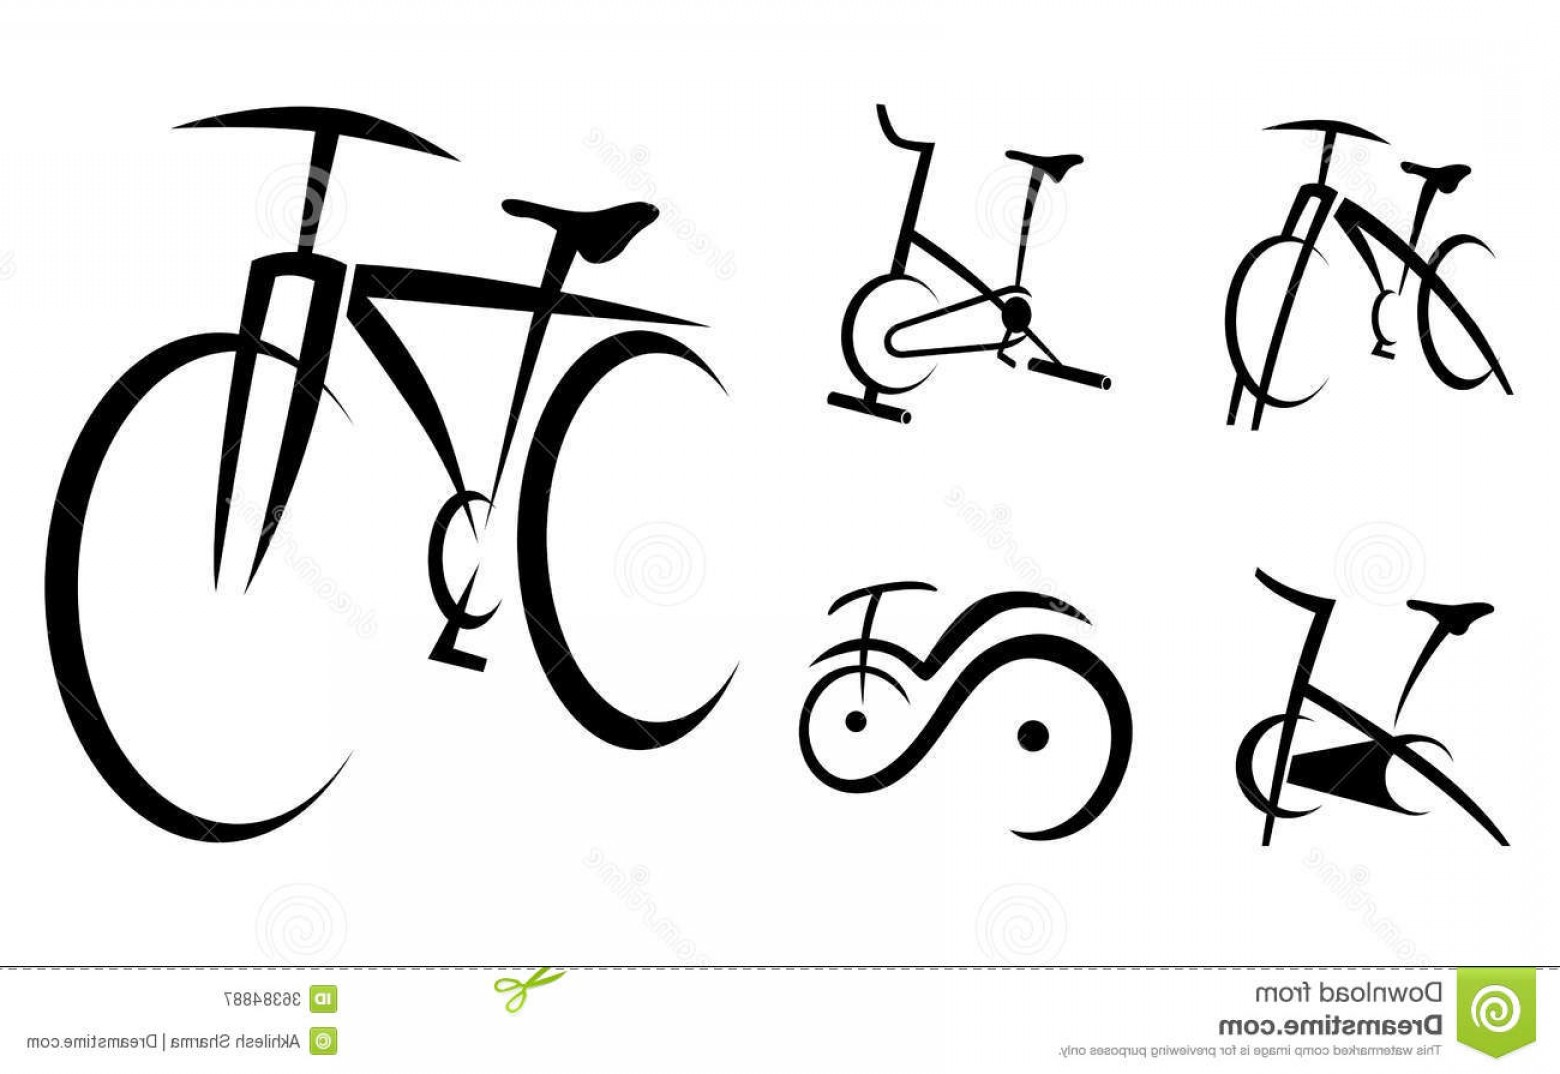 Indoor Cycling Bike Vector: Royalty Free Stock Photography Exercise Bike Cycle Health Equipment Vector Illustration Image